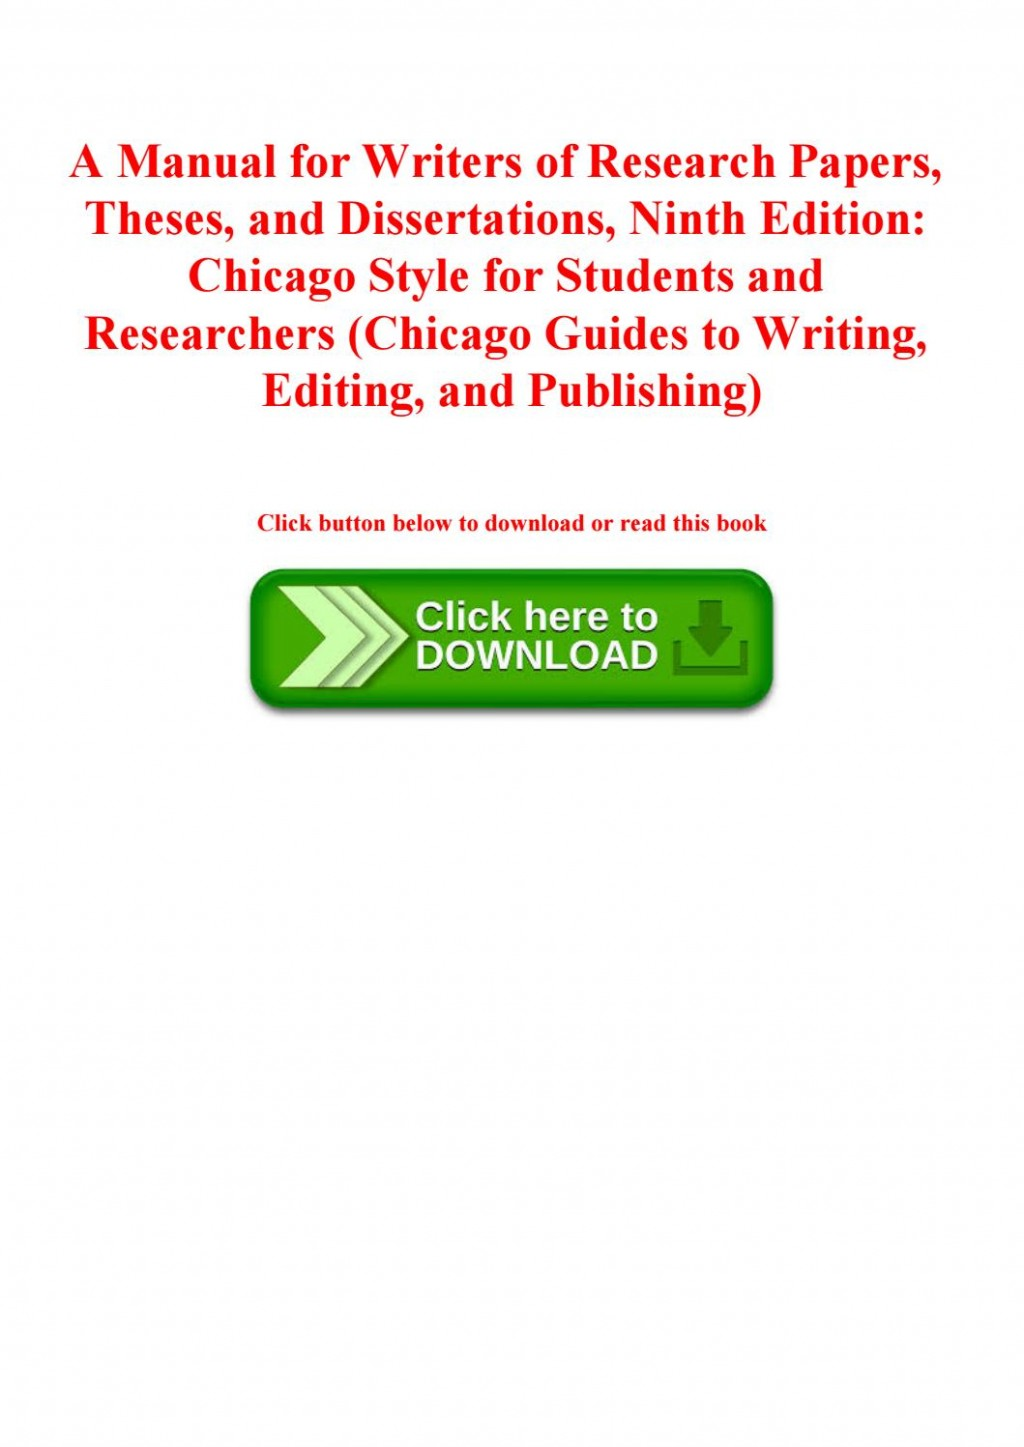 010 Manual For Writers Of Research Papers Theses And Dissertations 9th Edition Pdf Paper Page 1 Wonderful A Large